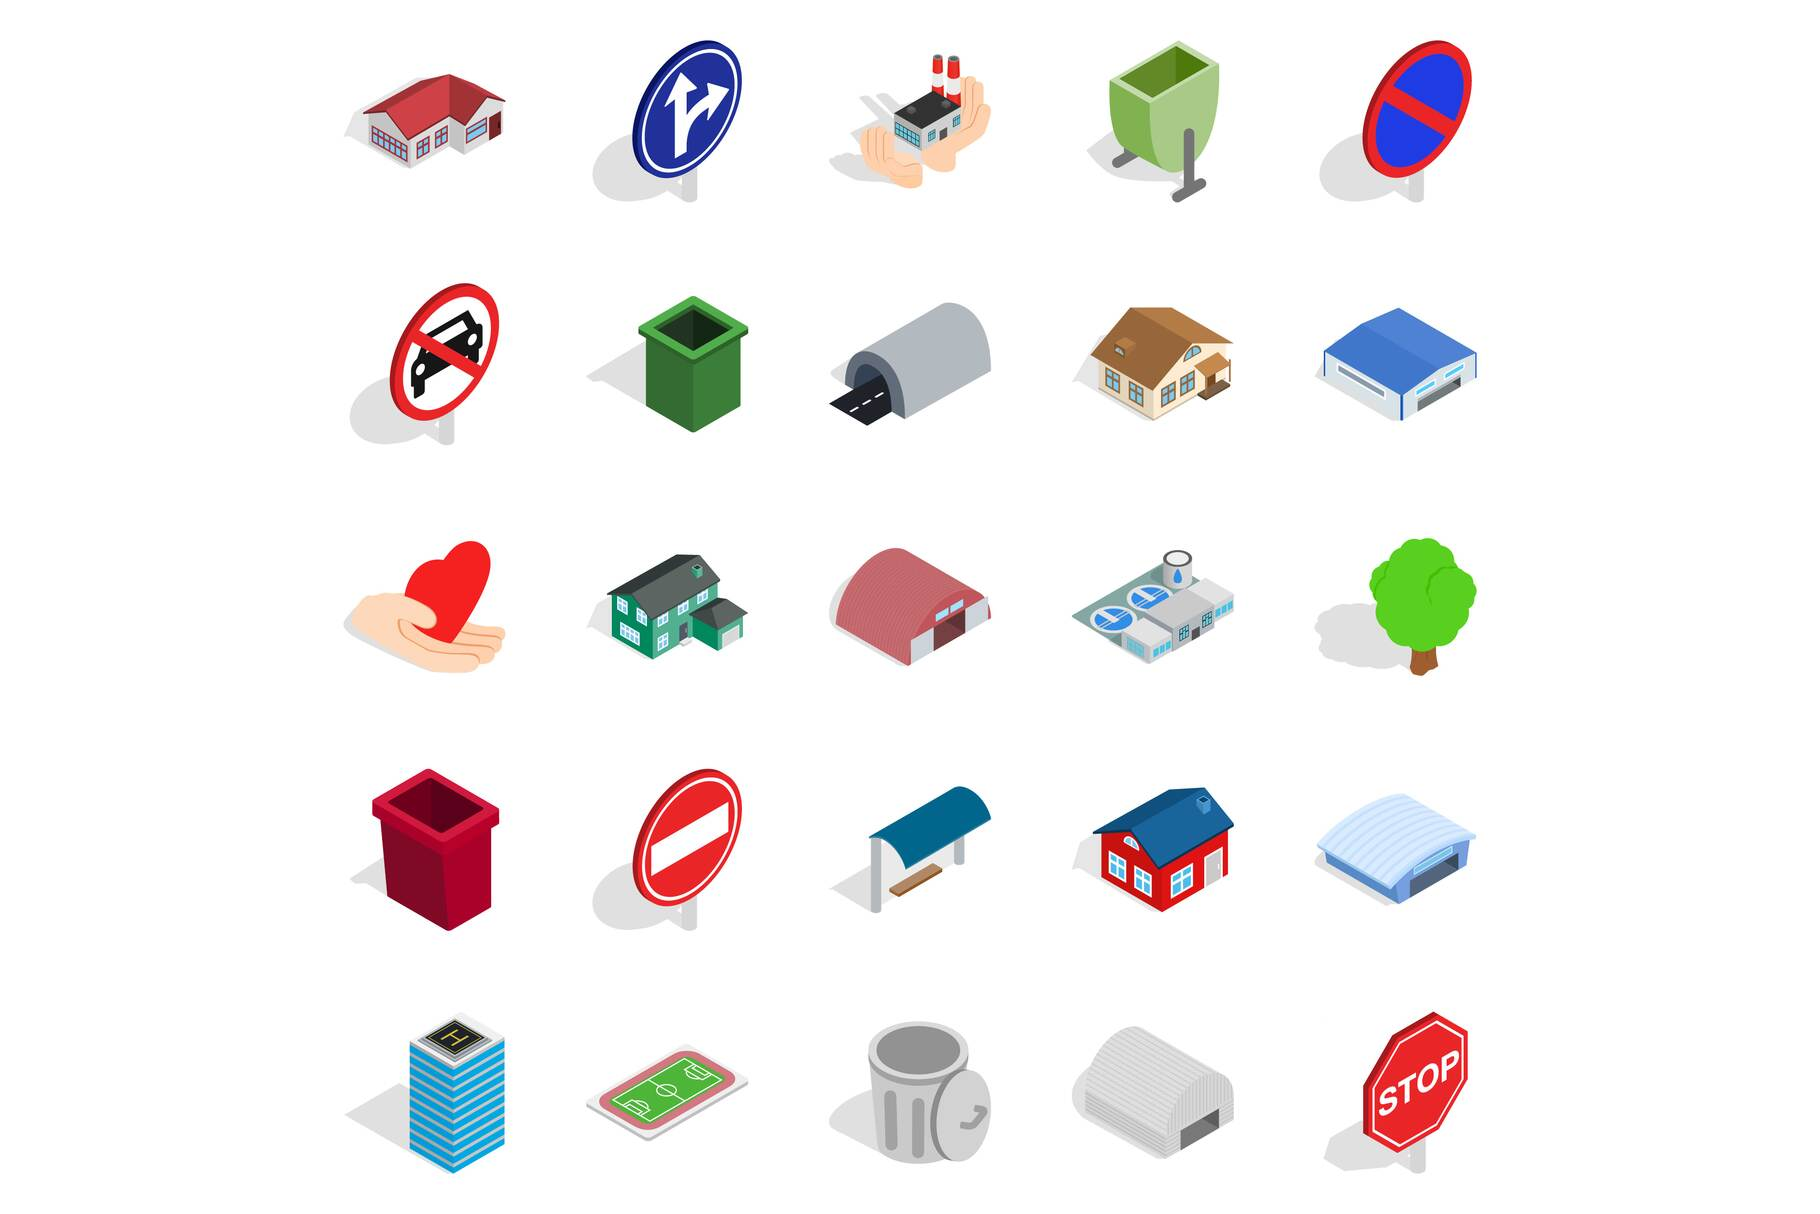 Town buildings icons set, isometric style example image 1